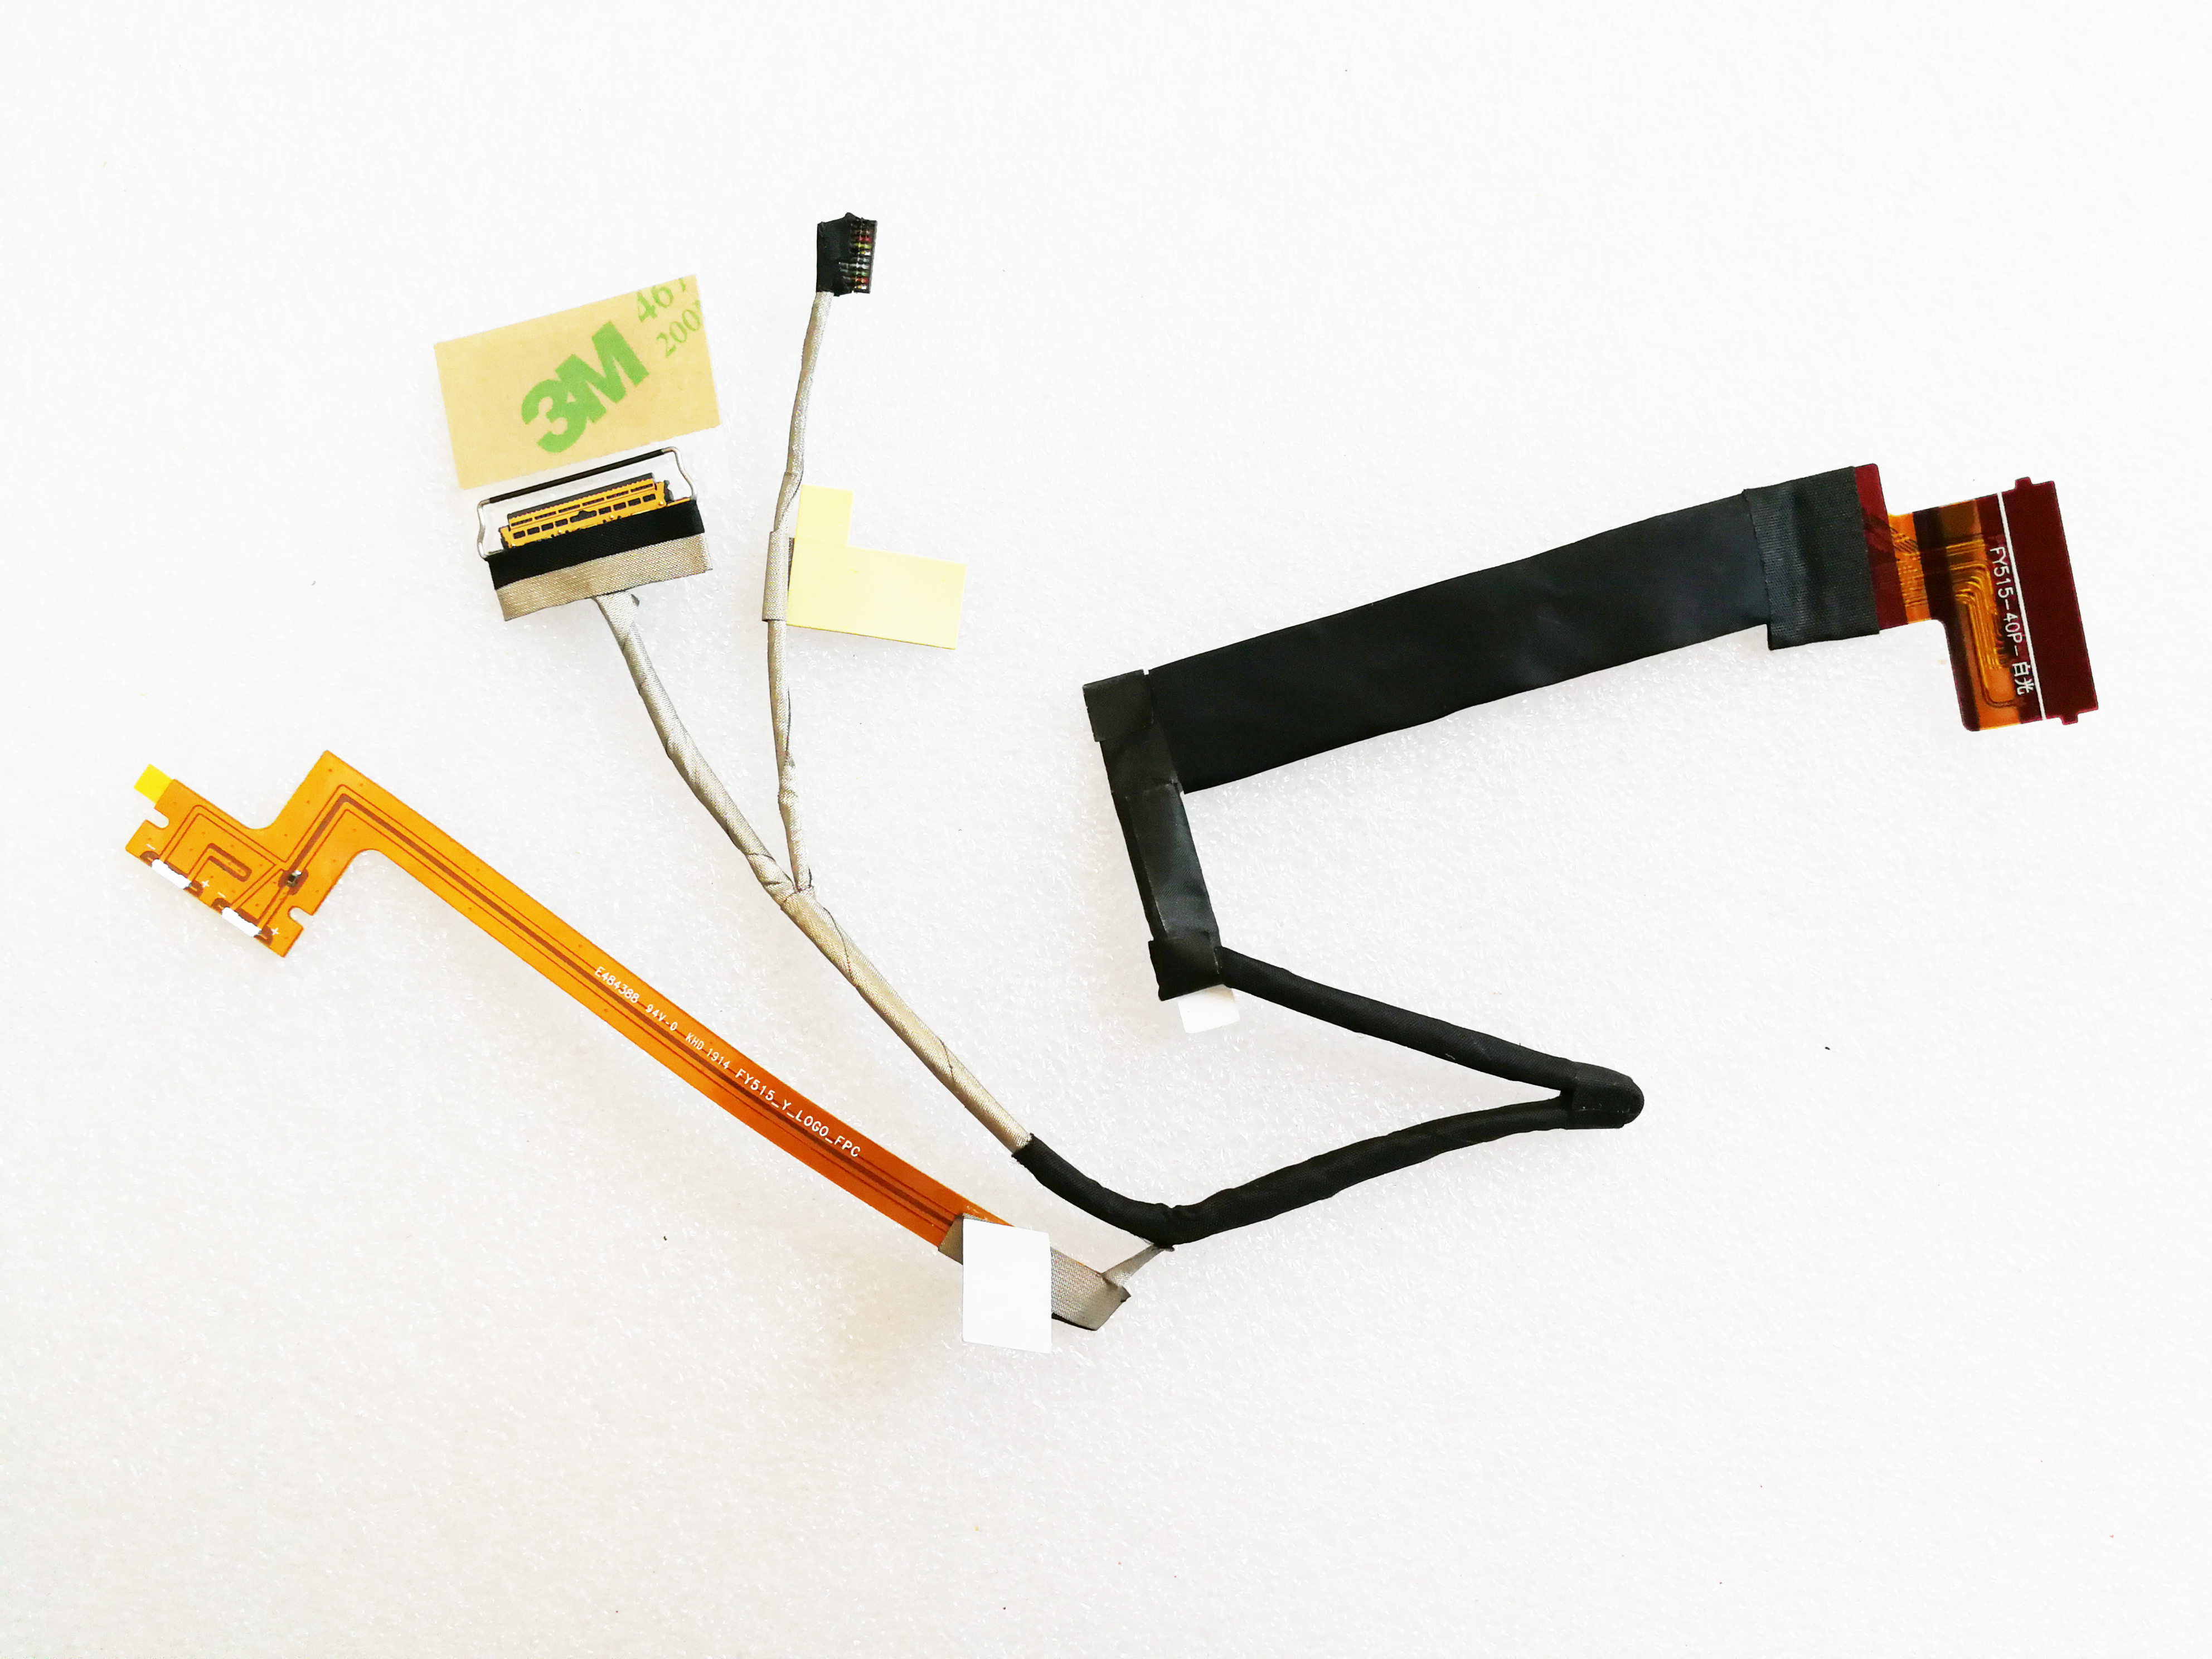 Cable Length: DC02001XE30 ShineBear New BMWQ2 DC02001XE30 for Lenovo Ideapad 300-15ISK LCD Lvds Cable